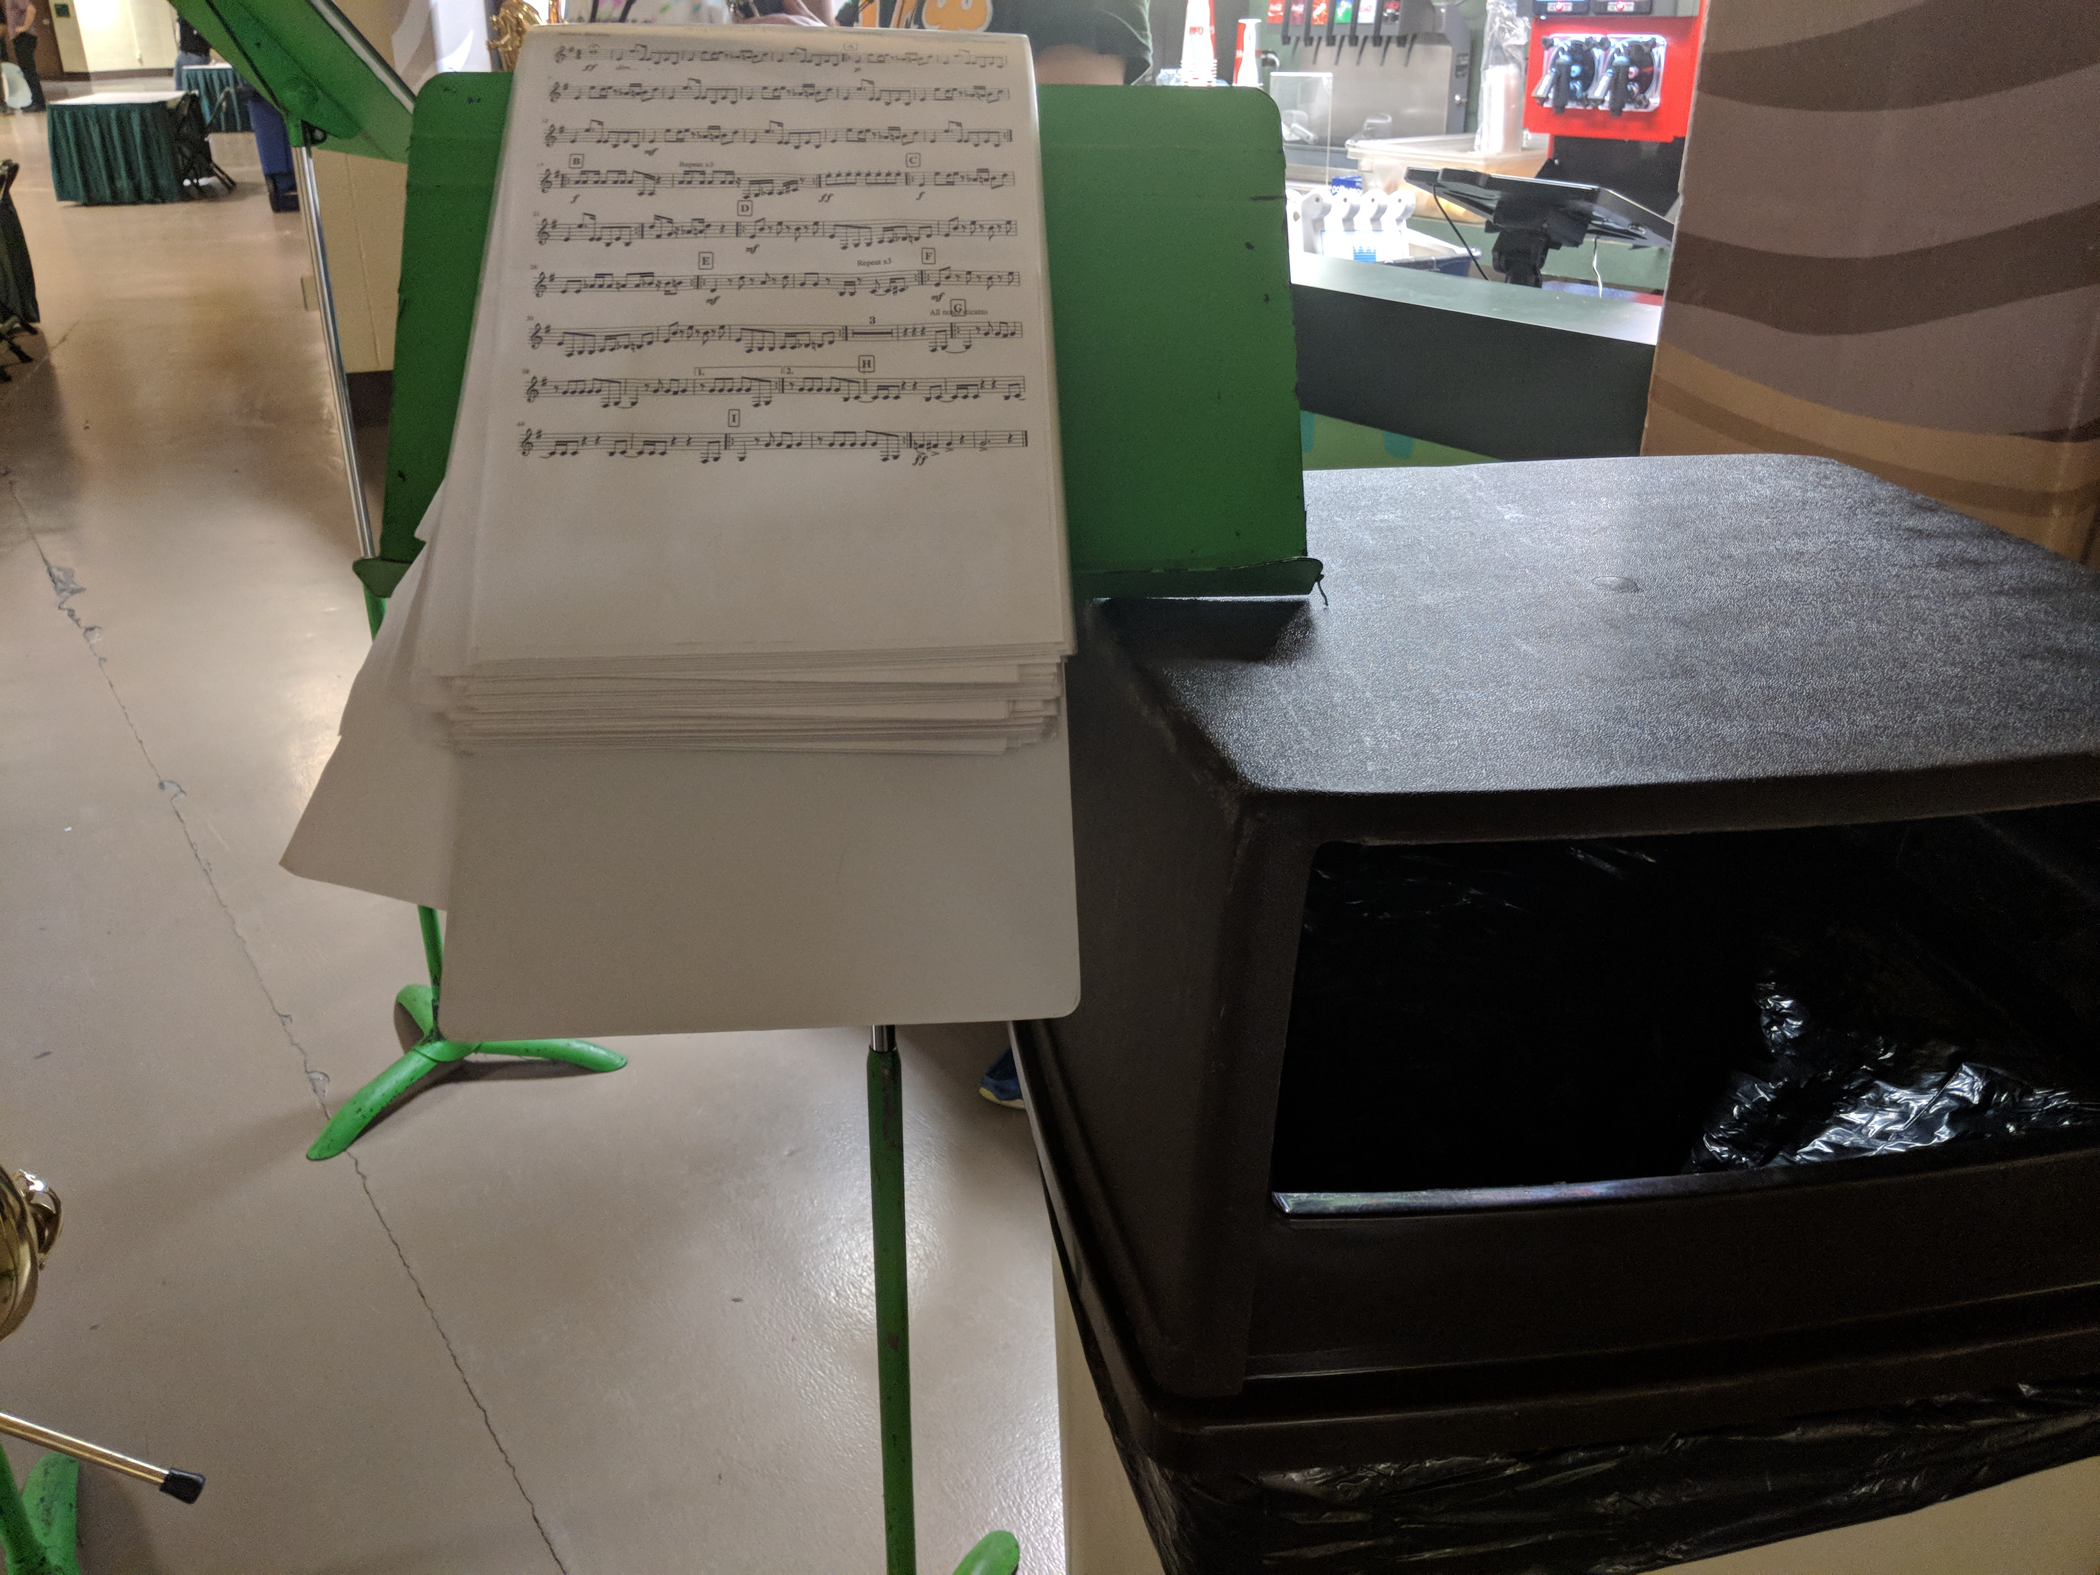 A binder dangling over a music stand supported by a trash can.